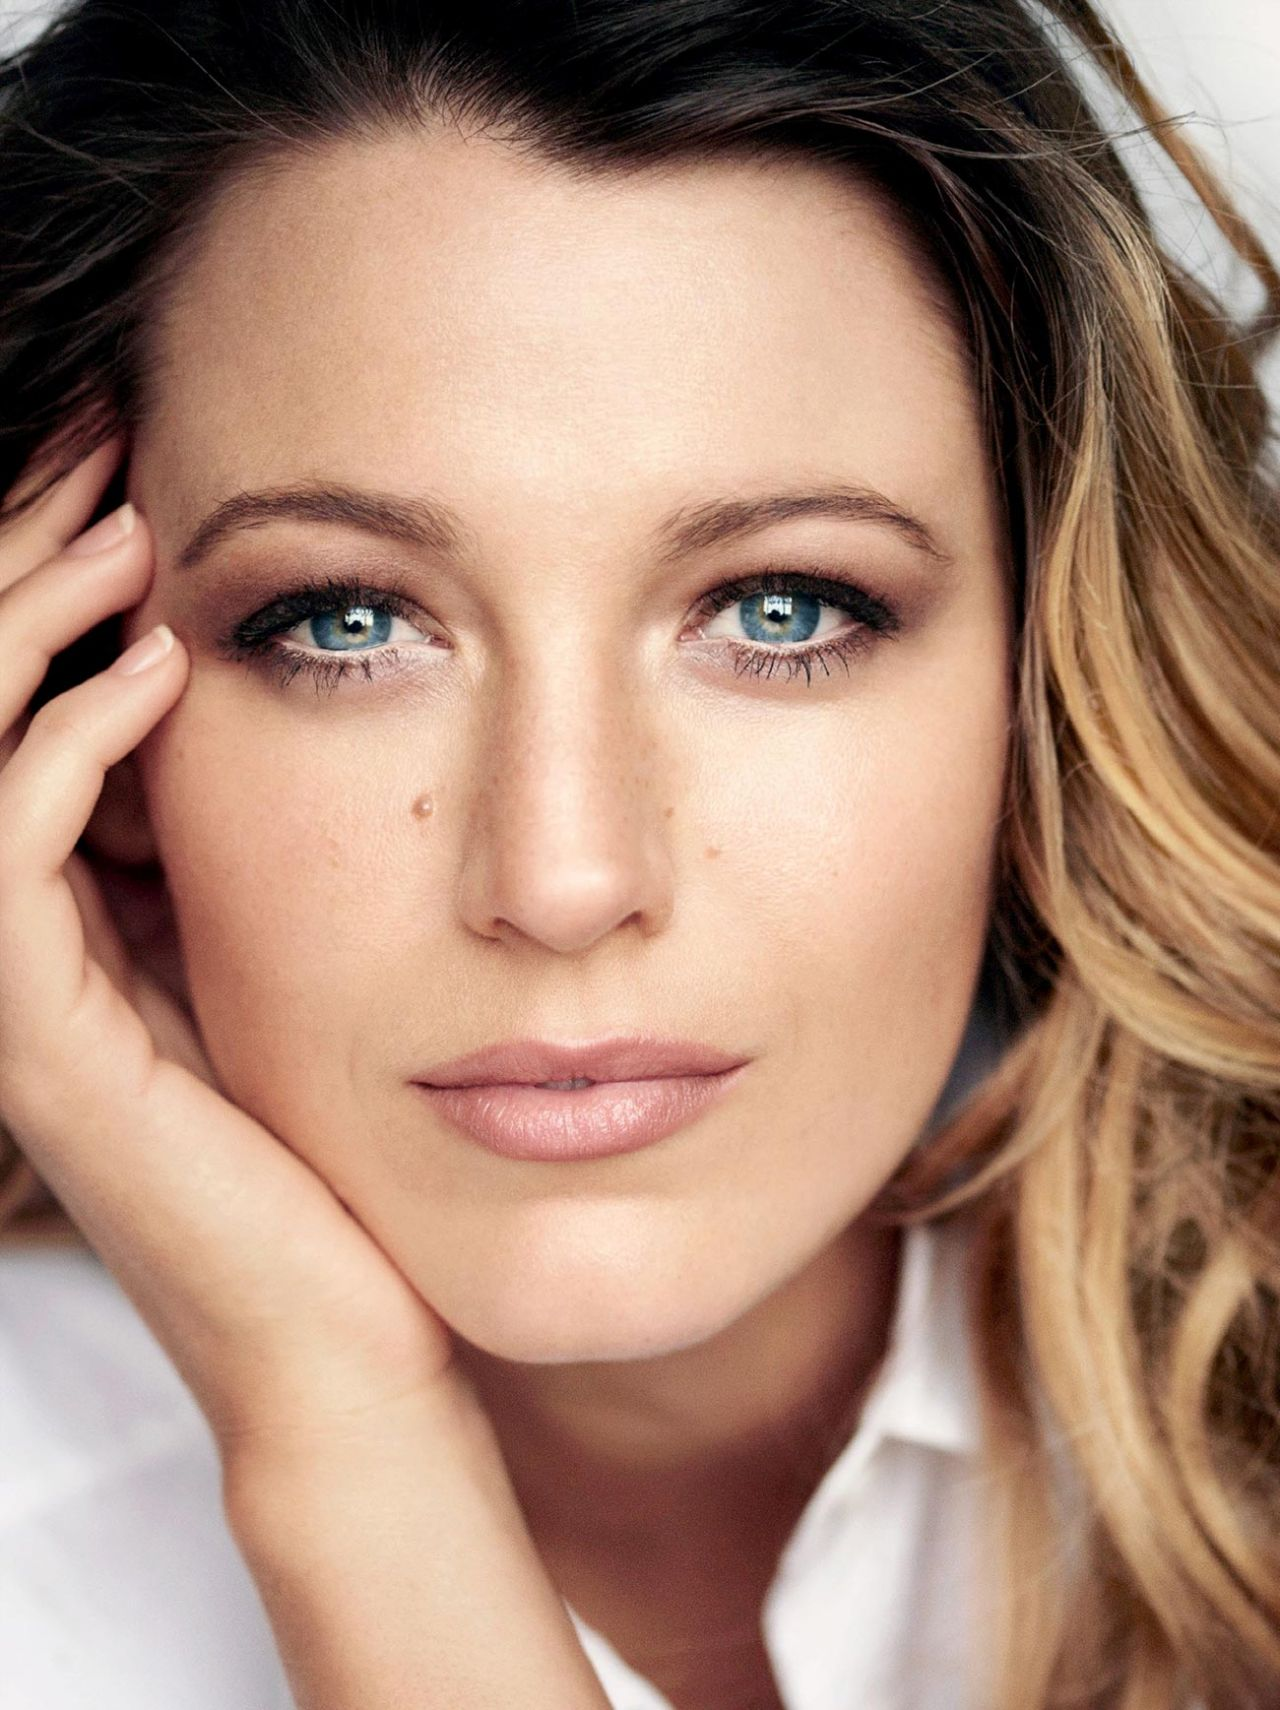 blake-lively-allure-magazine-may-2015-cover-and-photoshoot_1.jpg